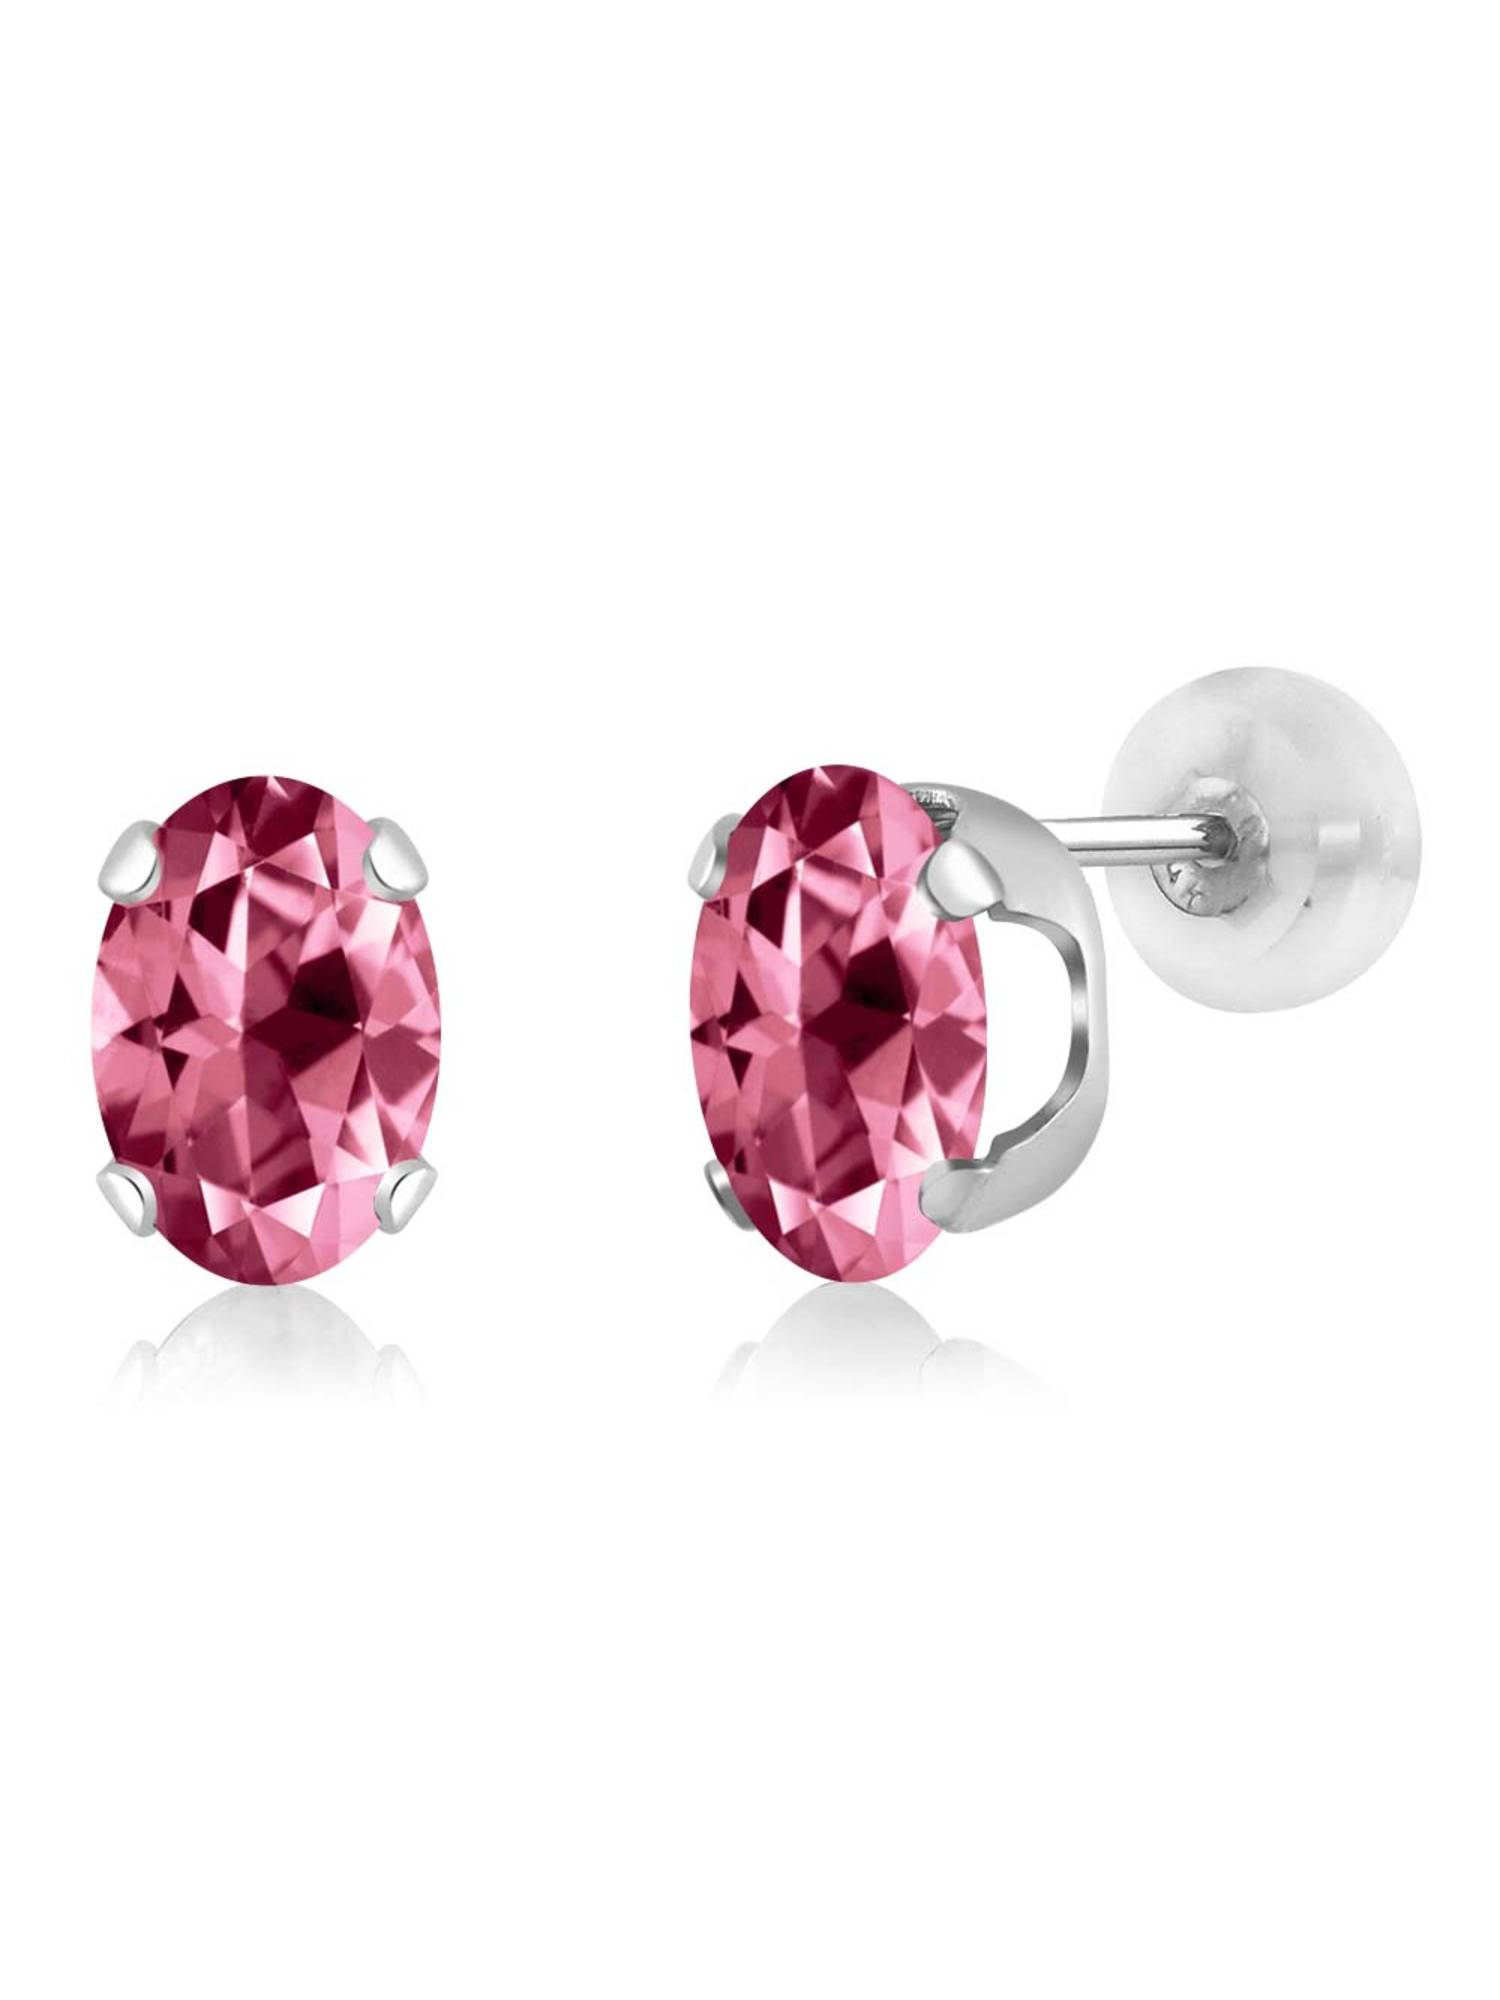 14K White Gold Earrings Set with Oval Pink Topaz from Swarovski by